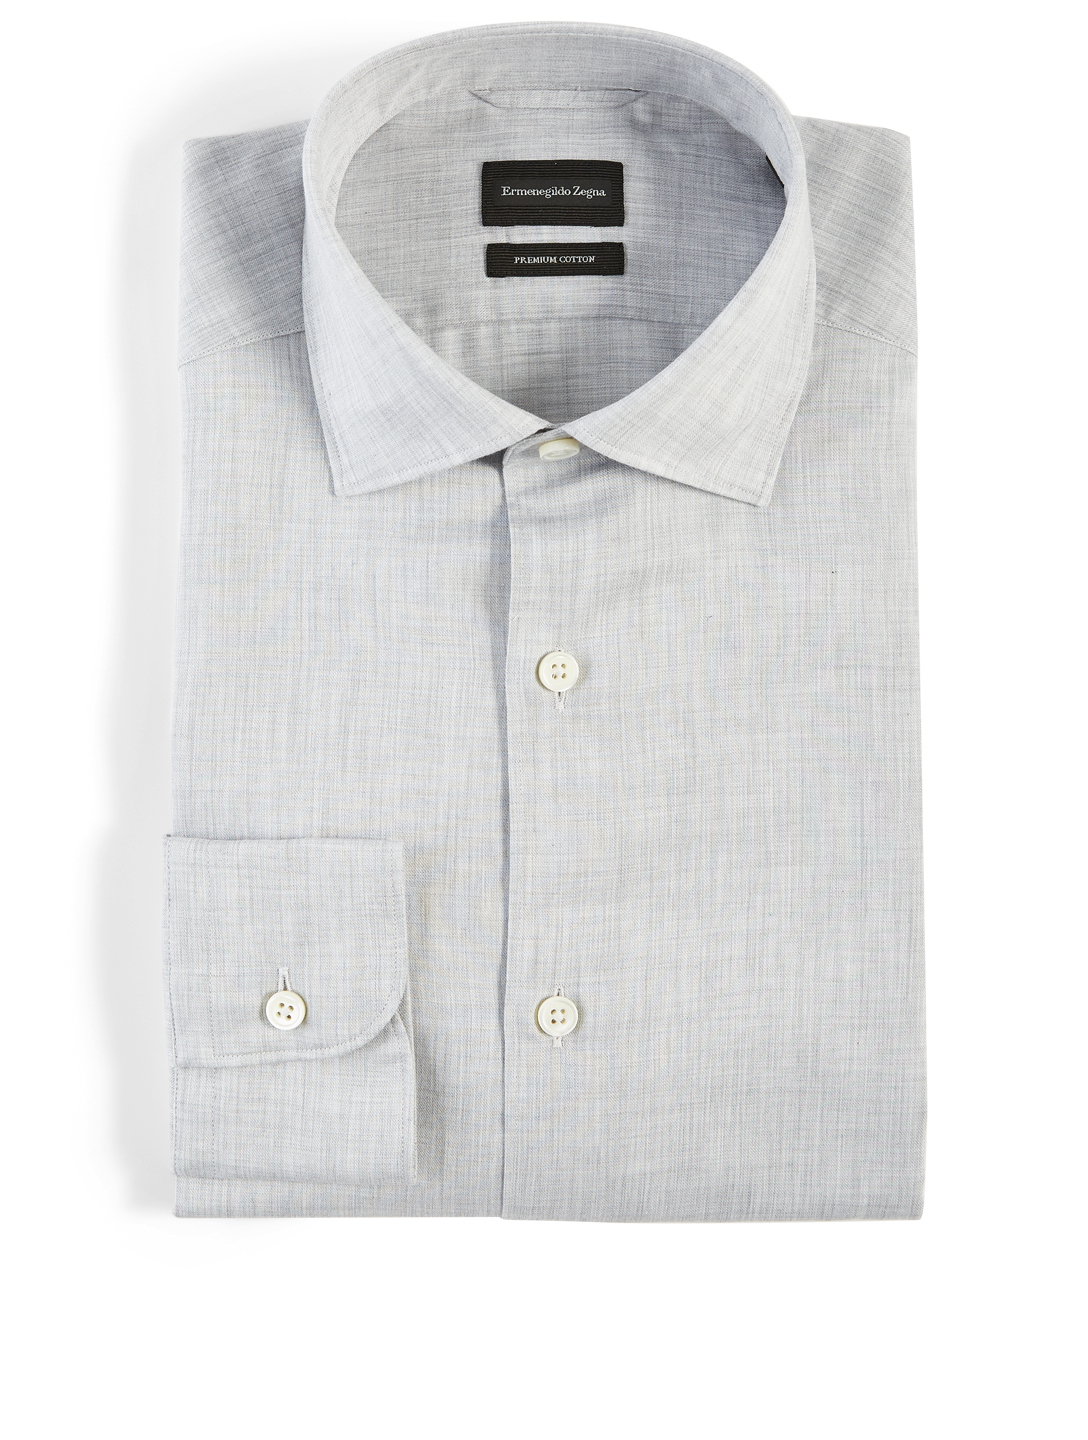 ERMENEGILDO ZEGNA Cotton Casual Shirt Men's Grey